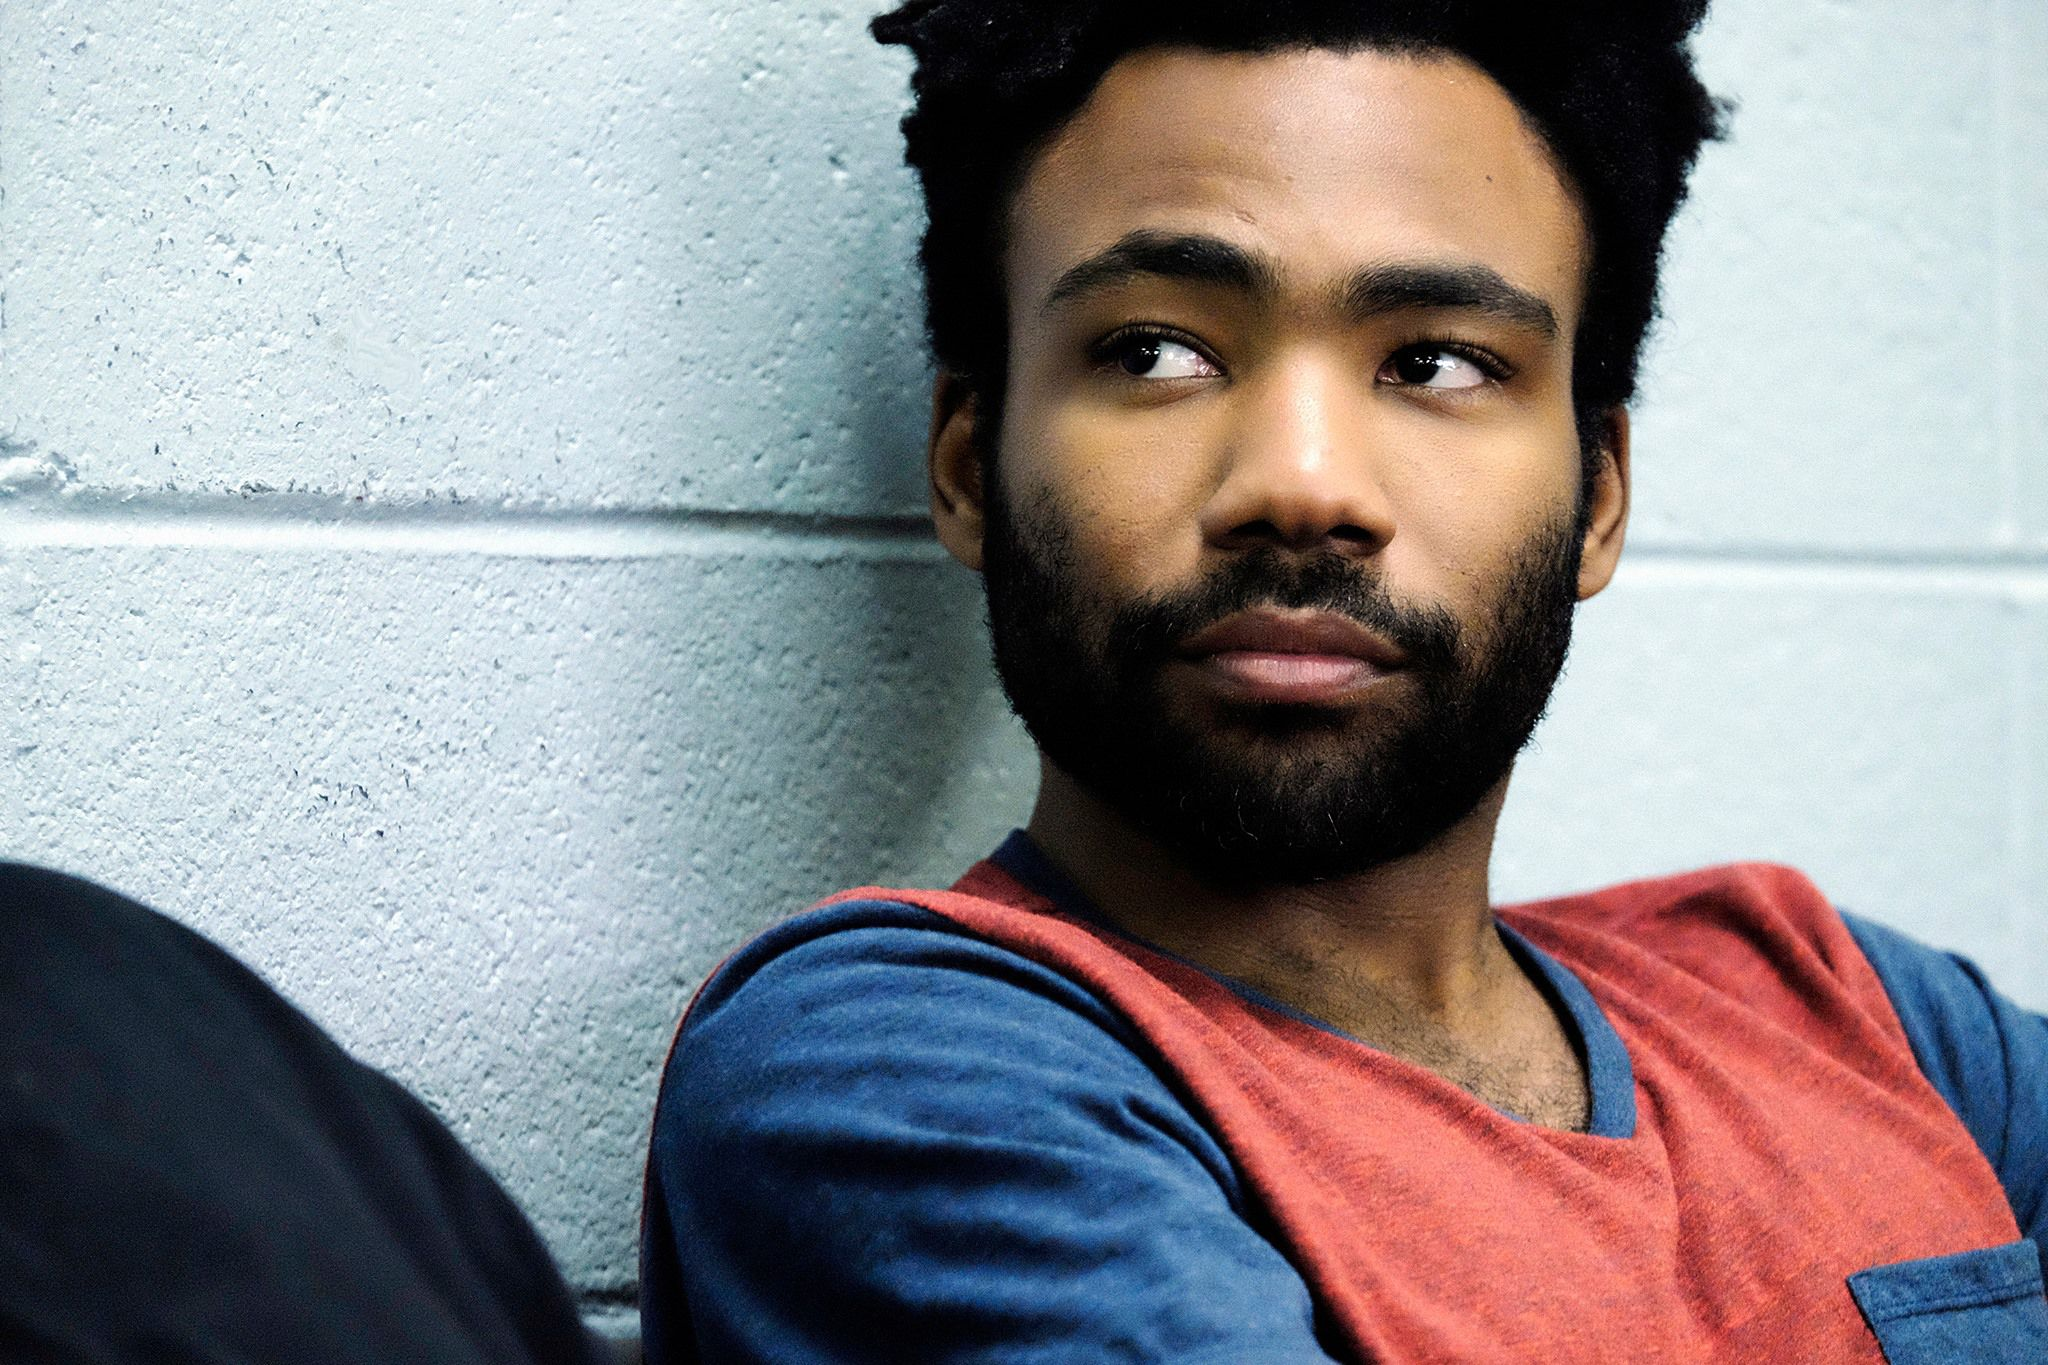 "<p>Created by and starring Donald Glover, <em data-verified=""redactor"" data-redactor-tag=""em"">Atlanta</em><span class=""redactor-invisible-space"" data-verified=""redactor"" data-redactor-tag=""span"" data-redactor-class=""redactor-invisible-space""> tells the story of Earn (Glover), an Ivy League dropout attempting to launch his cousin (Brian Tyree Henry<span class=""redactor-invisible-space"" data-verified=""redactor"" data-redactor-tag=""span"" data-redactor-class=""redactor-invisible-space"">)</span> into rap stardom.</span></p><p><span class=""redactor-invisible-space"" data-verified=""redactor"" data-redactor-tag=""span"" data-redactor-class=""redactor-invisible-space""><em data-verified=""redactor"" data-redactor-tag=""em""><a href=""https://youtu.be/N-KdOvyZlQo"" target=""_blank"">Atlanta</a> </em><span class=""redactor-invisible-space"" data-verified=""redactor"" data-redactor-tag=""span"" data-redactor-class=""redactor-invisible-space"">airs Tuesdays at 10 PM EST on FX.</span><br></span></p>"